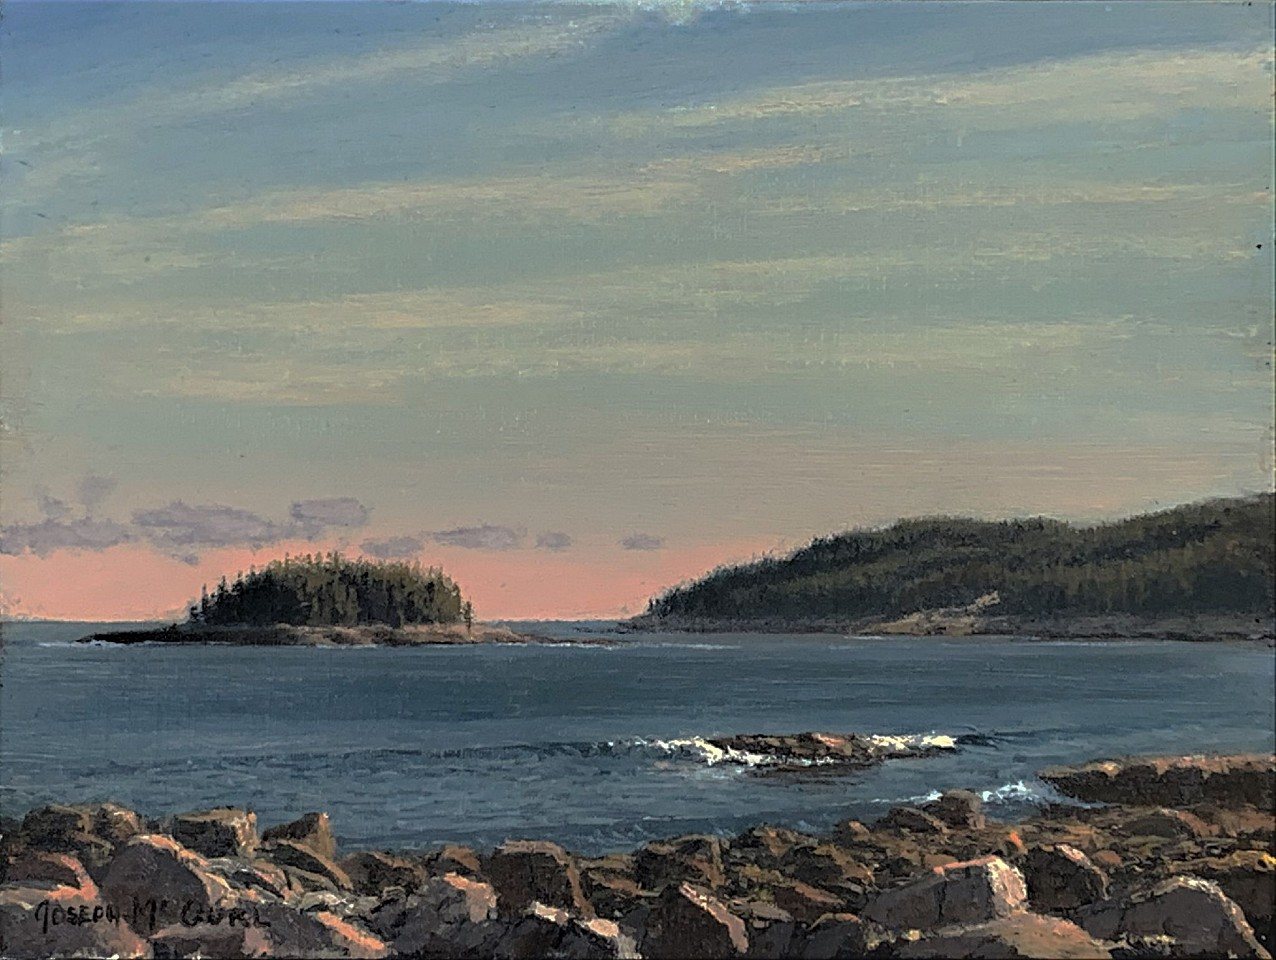 Joseph McGurl ,   Field Painting: Day is Done, the Coast of Maine  ,  2018     oil on linen panel ,  9 x 12 in. (22.9 x 30.5 cm)     JM200422